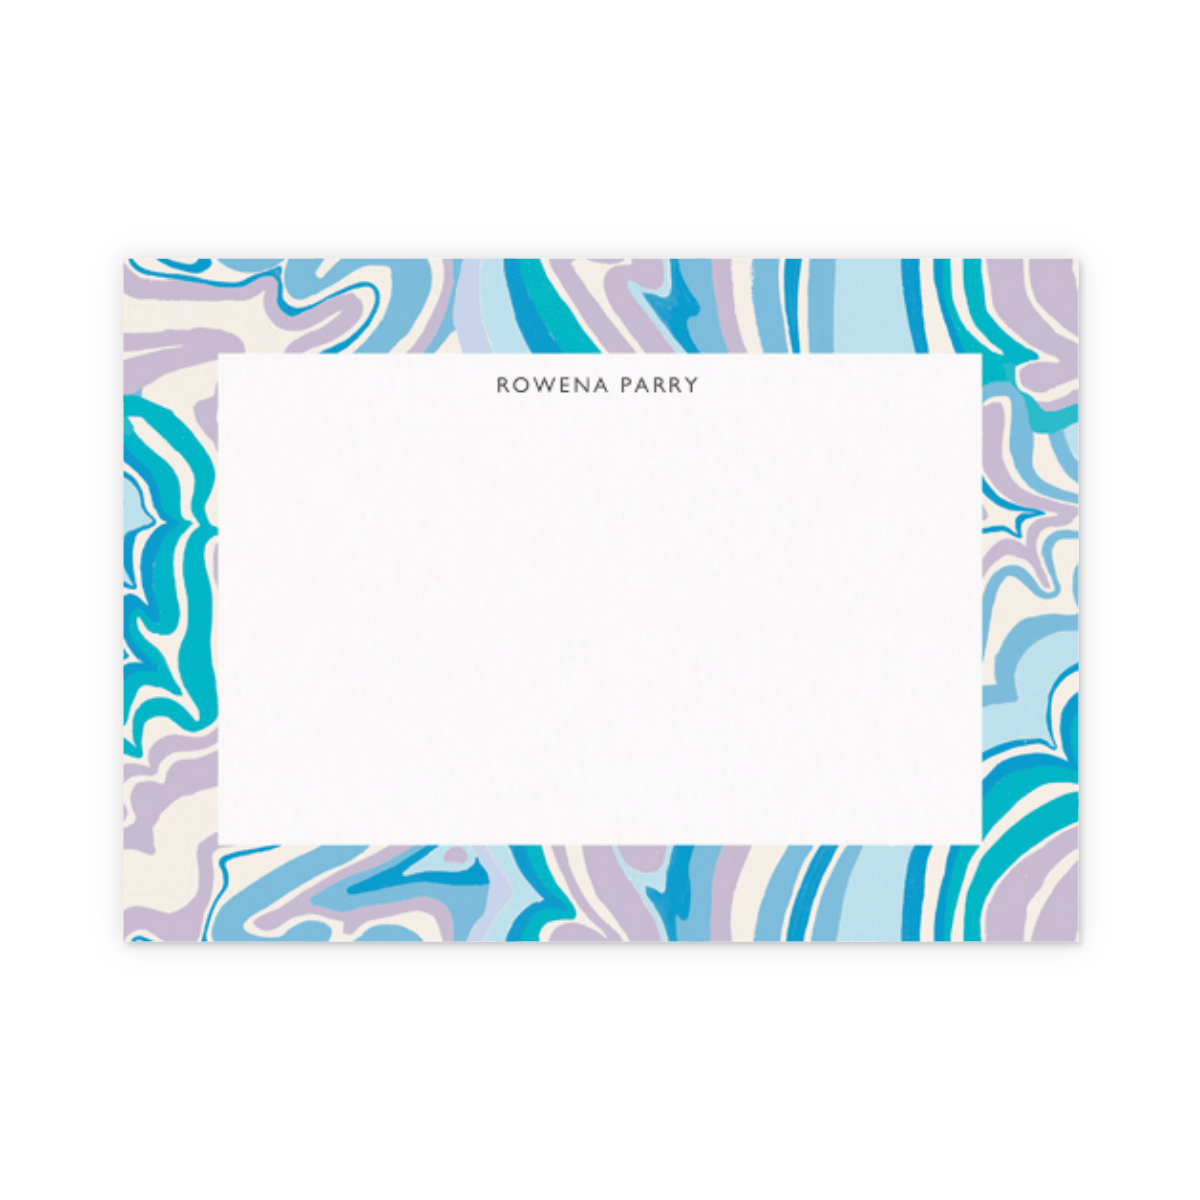 Https%3a%2f%2fwww.papier.com%2fproduct image%2f27907%2f10%2fblue malachite 6967 front 1508156965.png?ixlib=rb 1.1